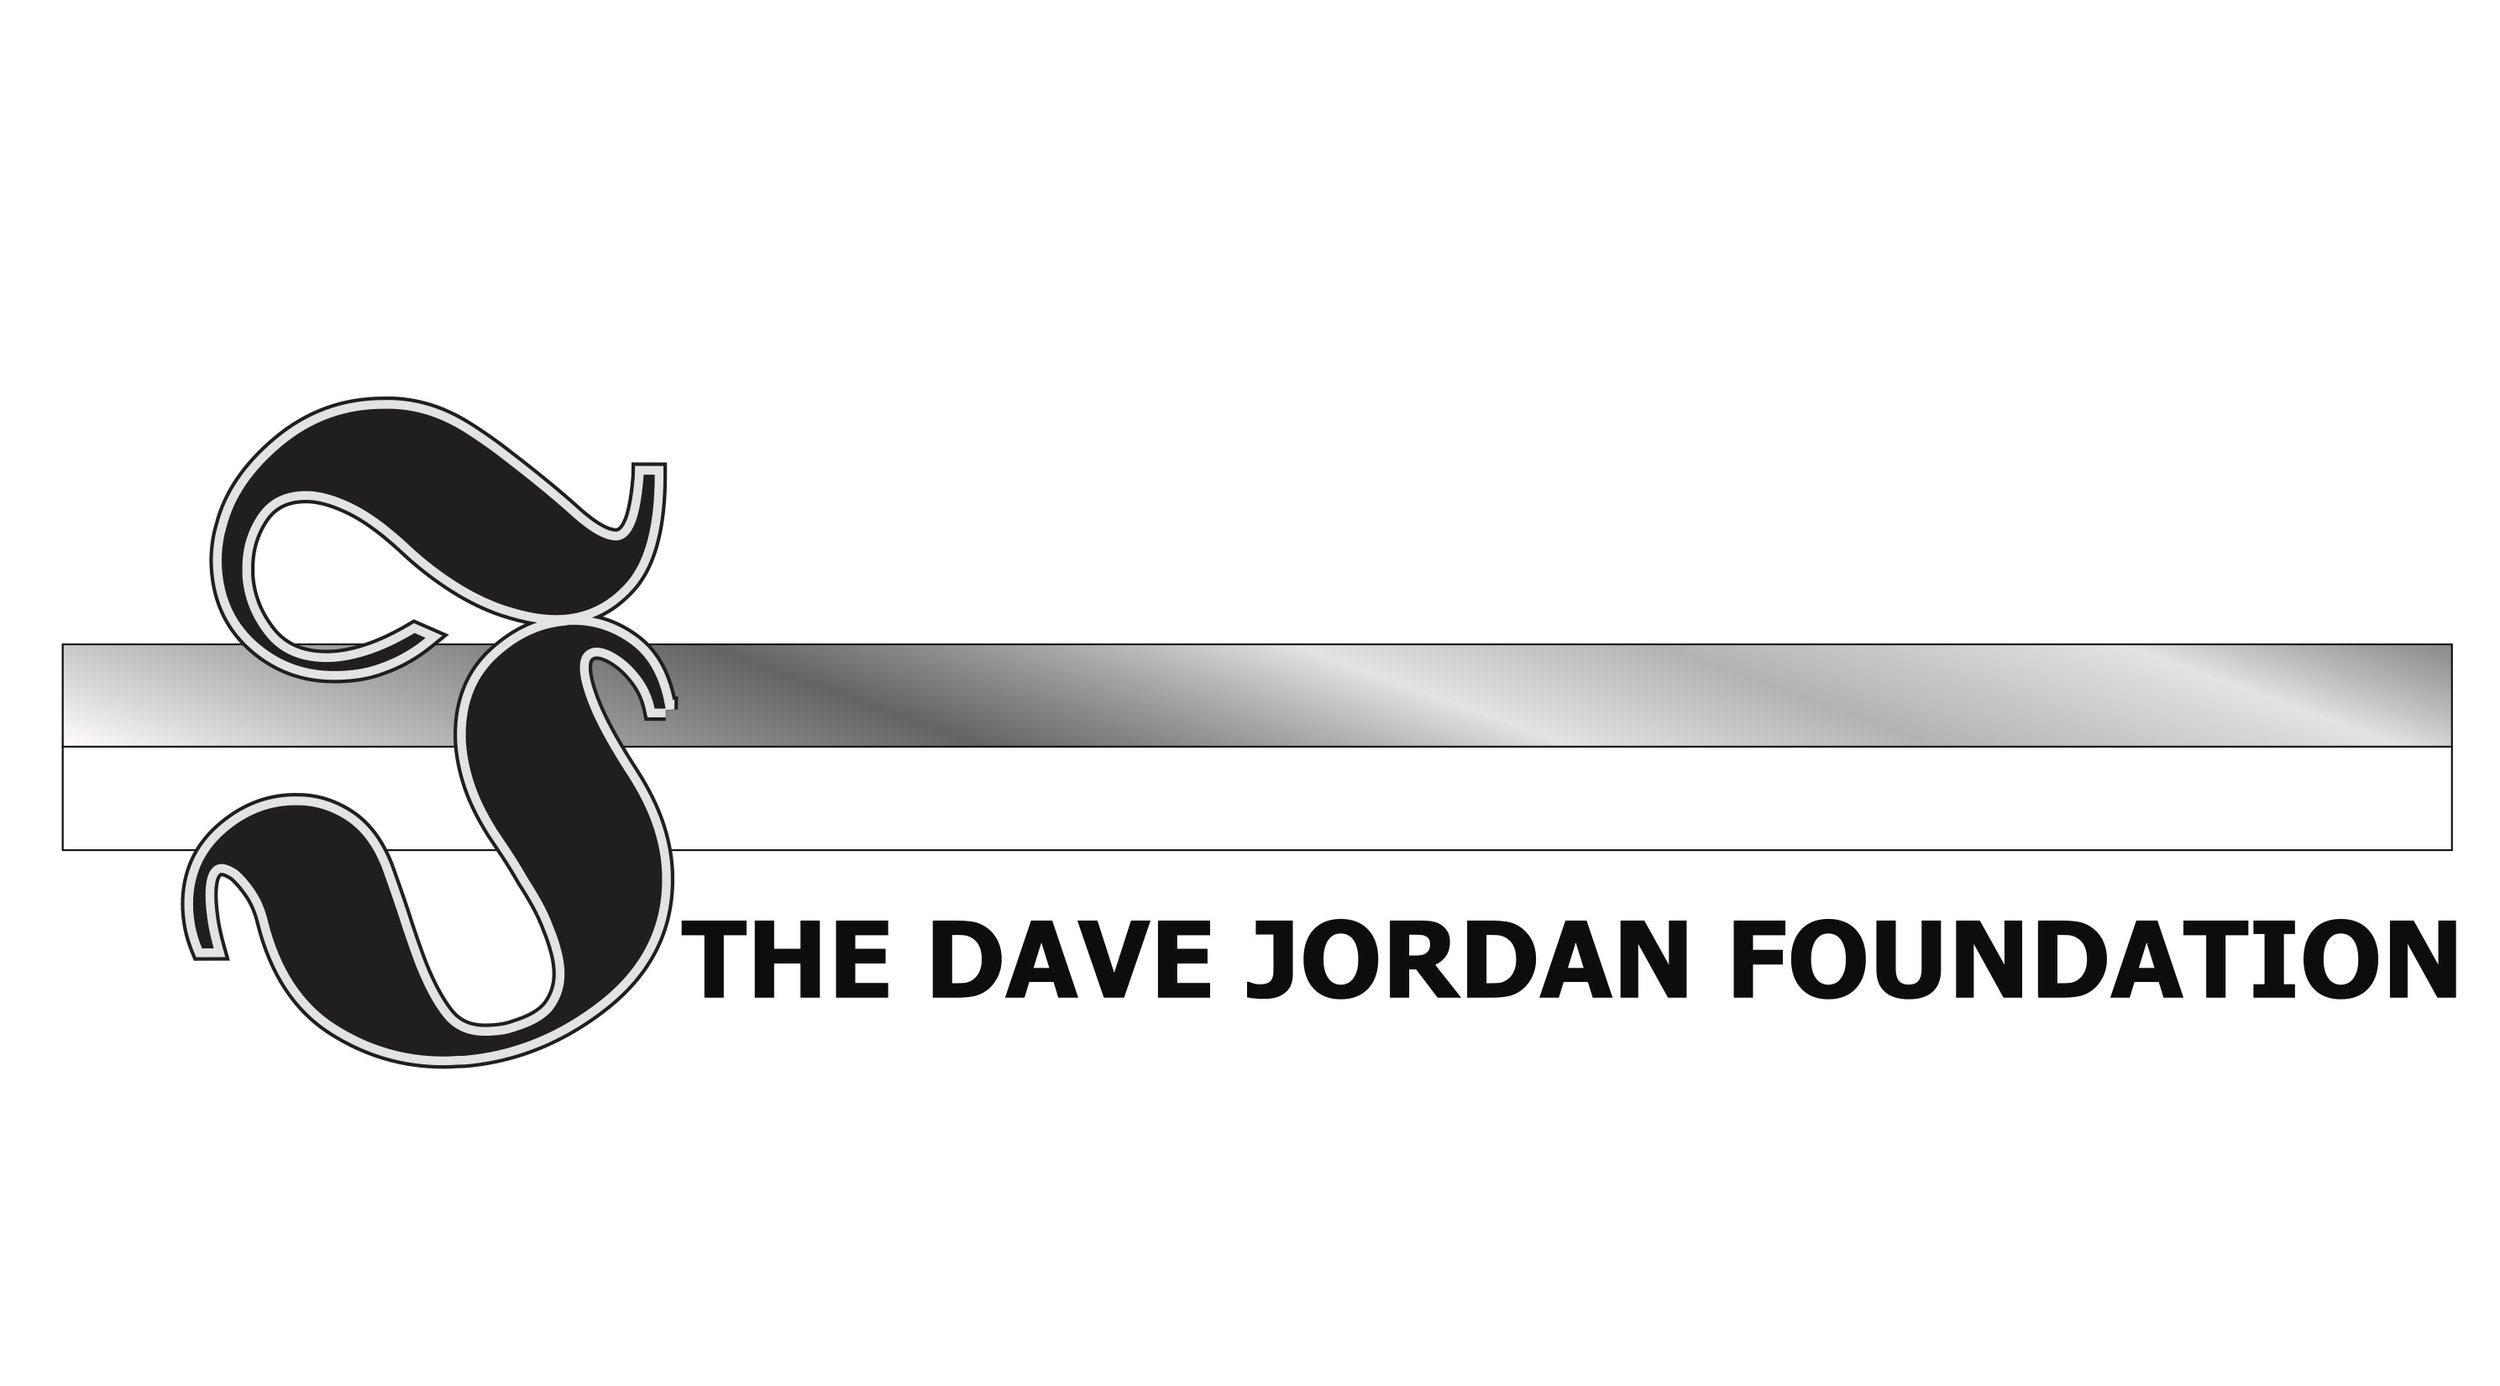 DJfoundationLogo copy.jpg